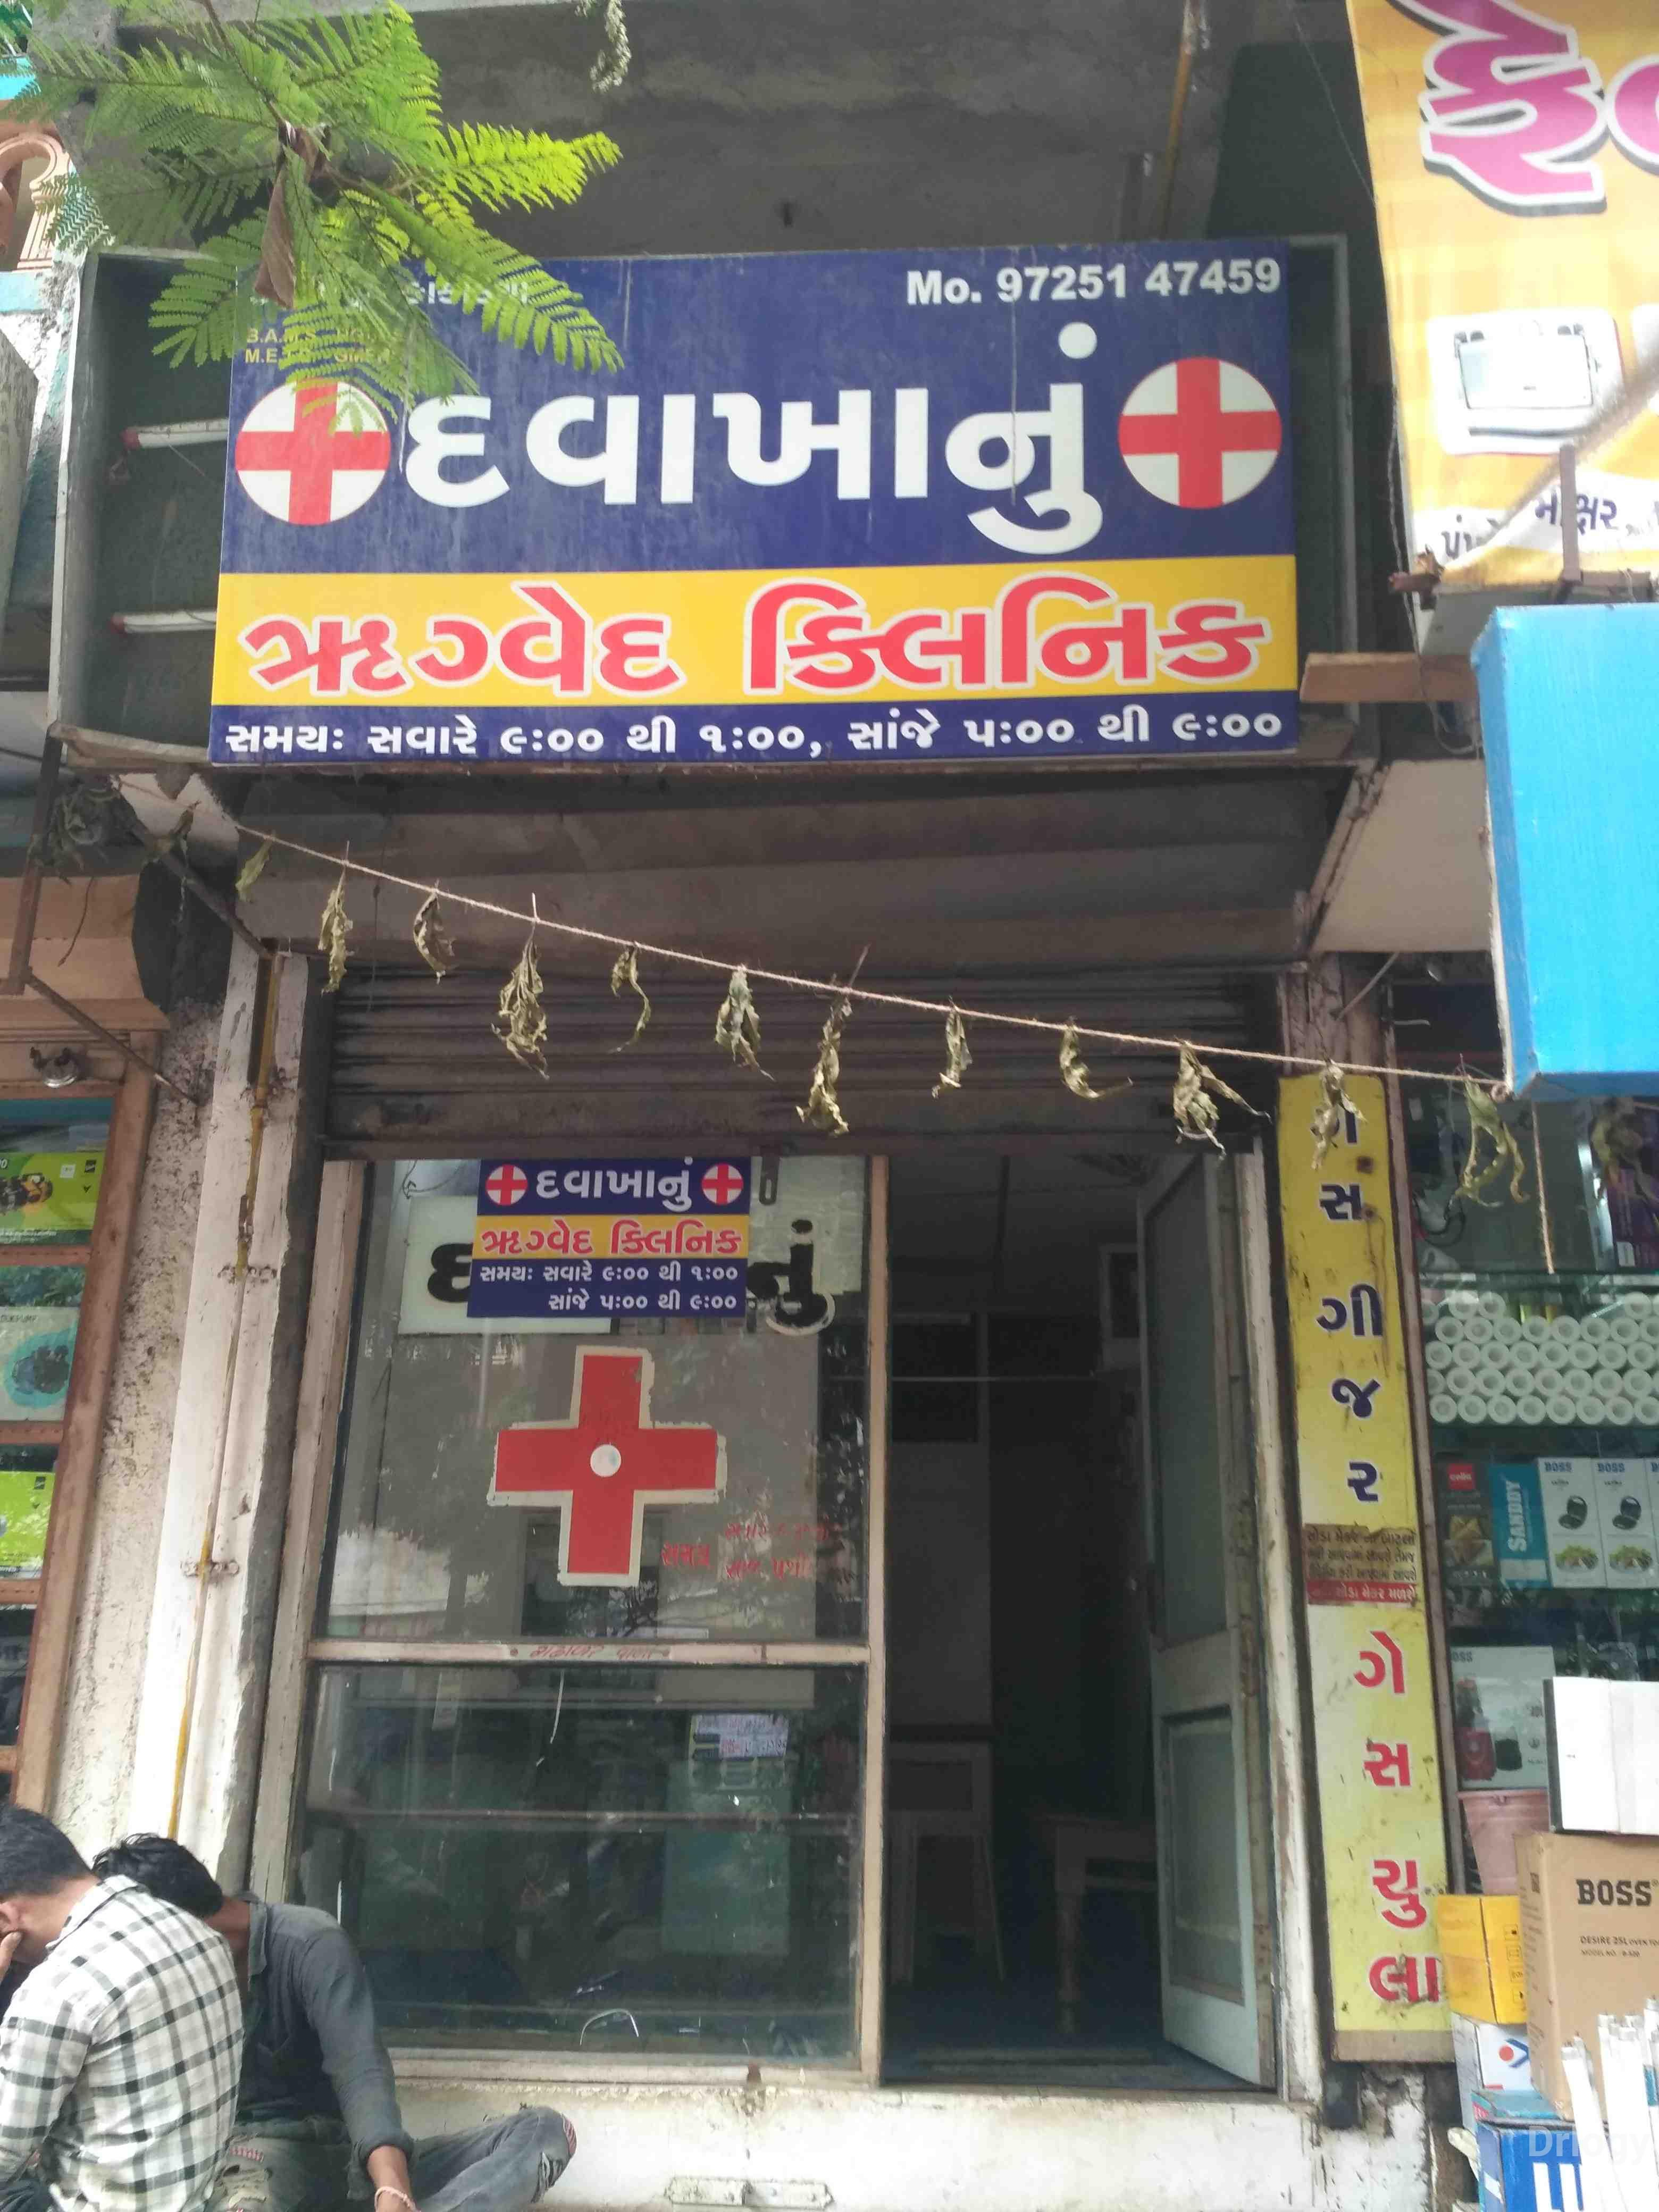 Rugved clinic in Surat